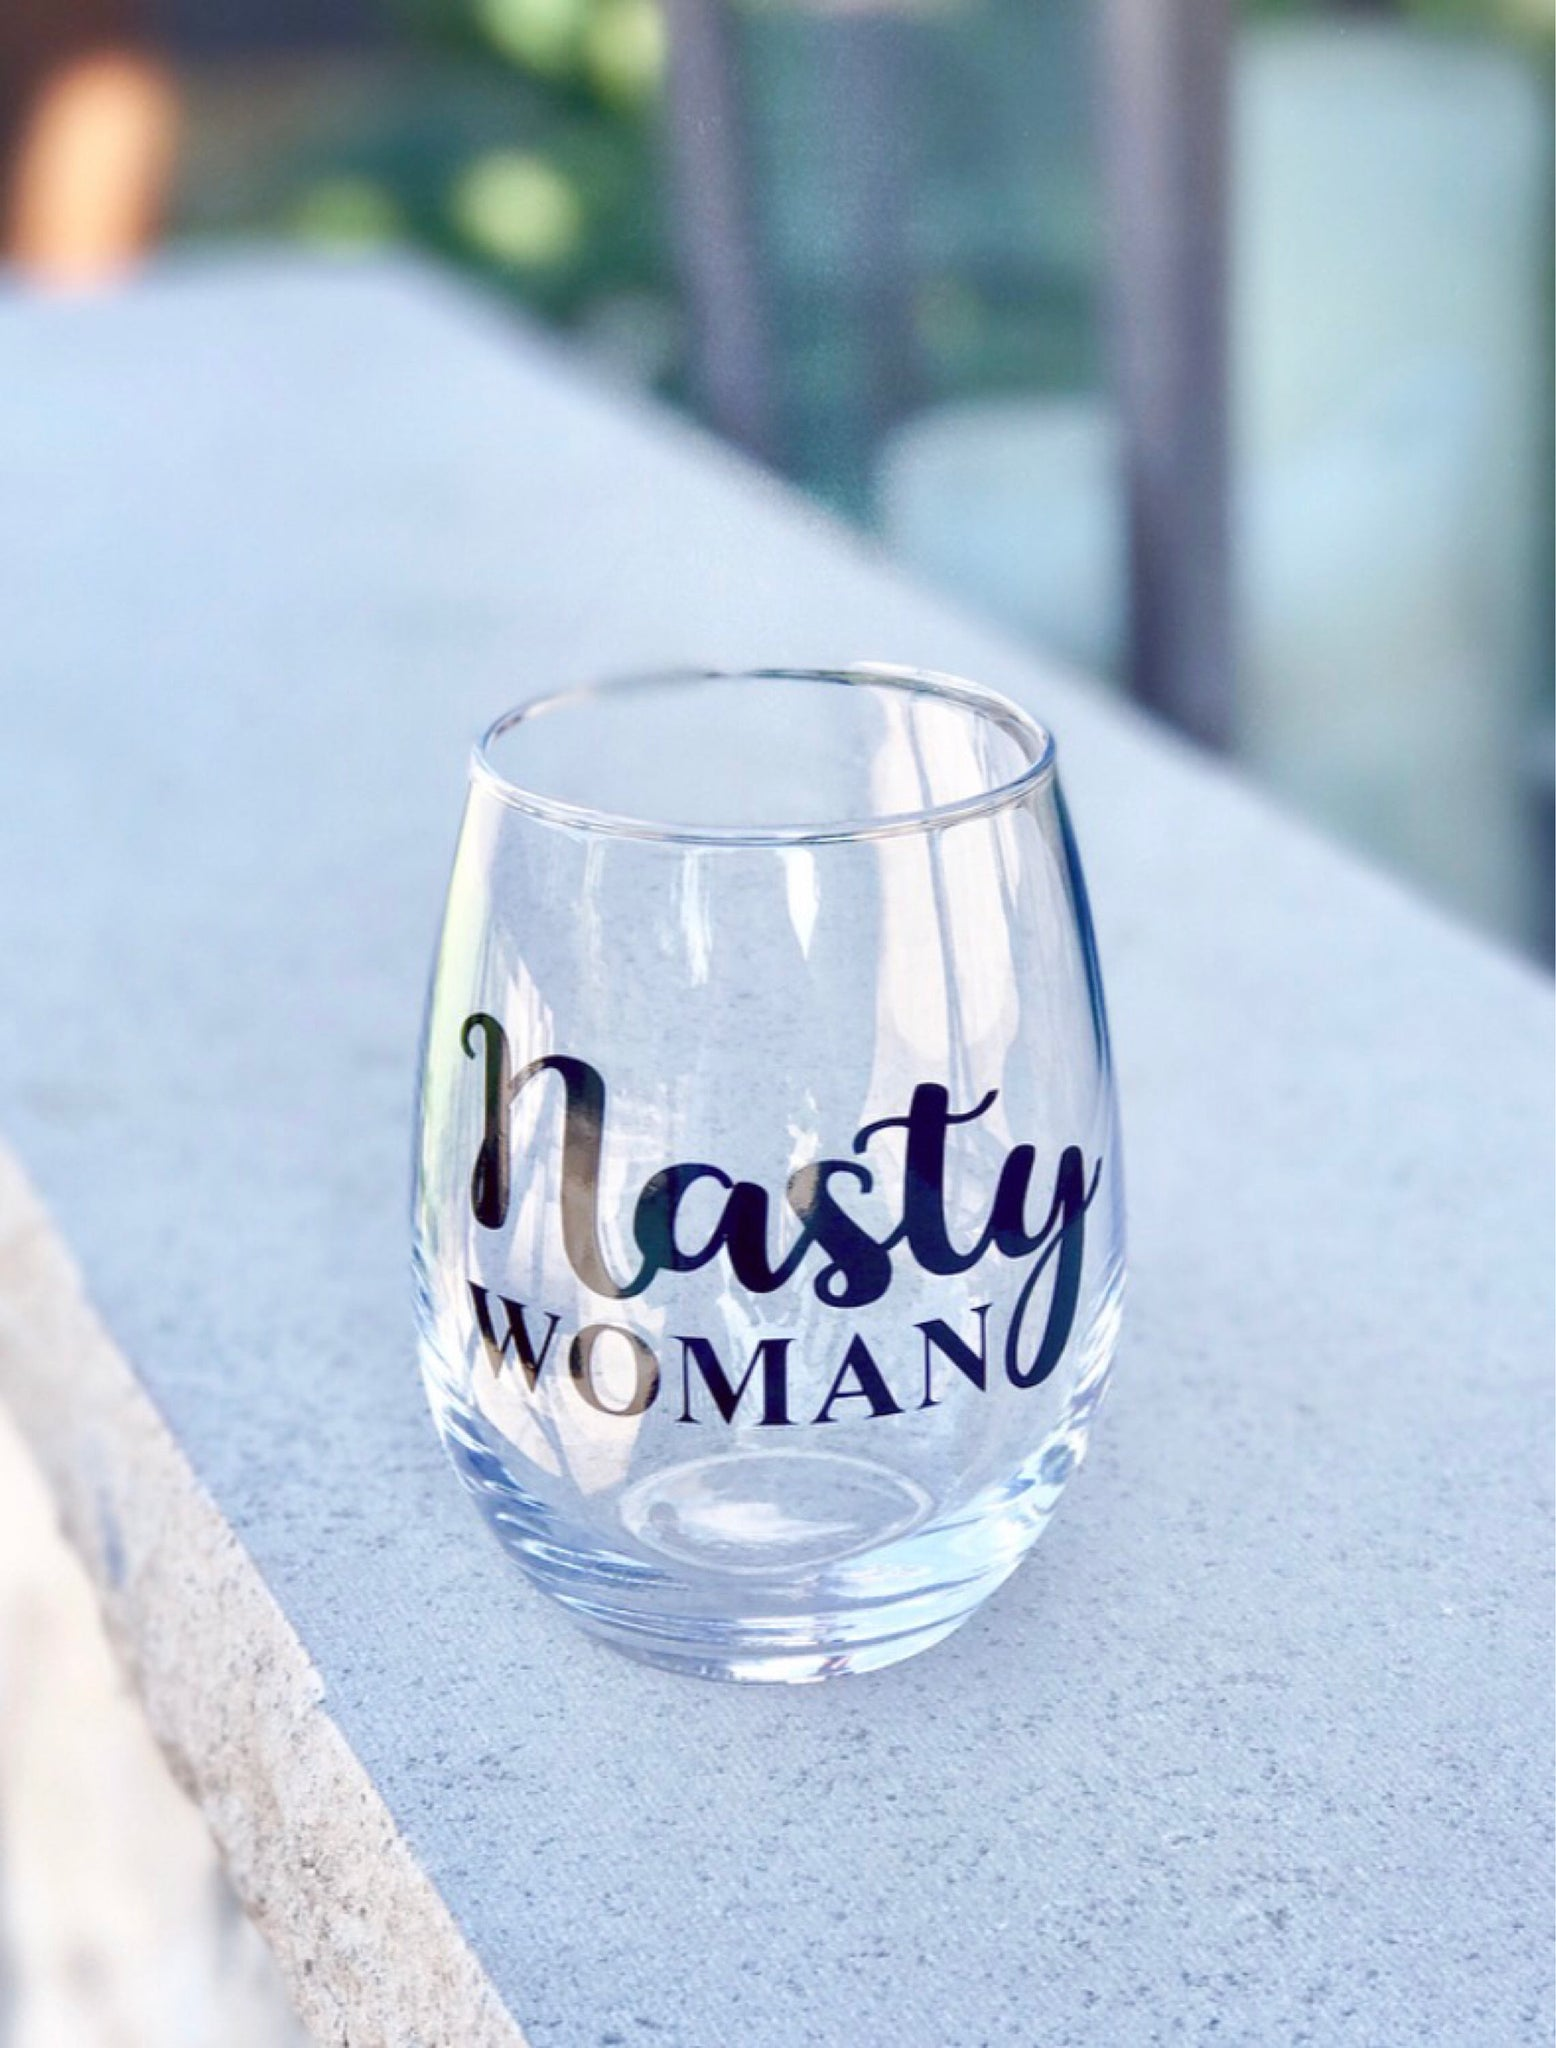 Nasty woman stemless wine glass/ political gift/ gag gift/ personalized glass/ custom glass/ politics/ trump/ republican/ democrat